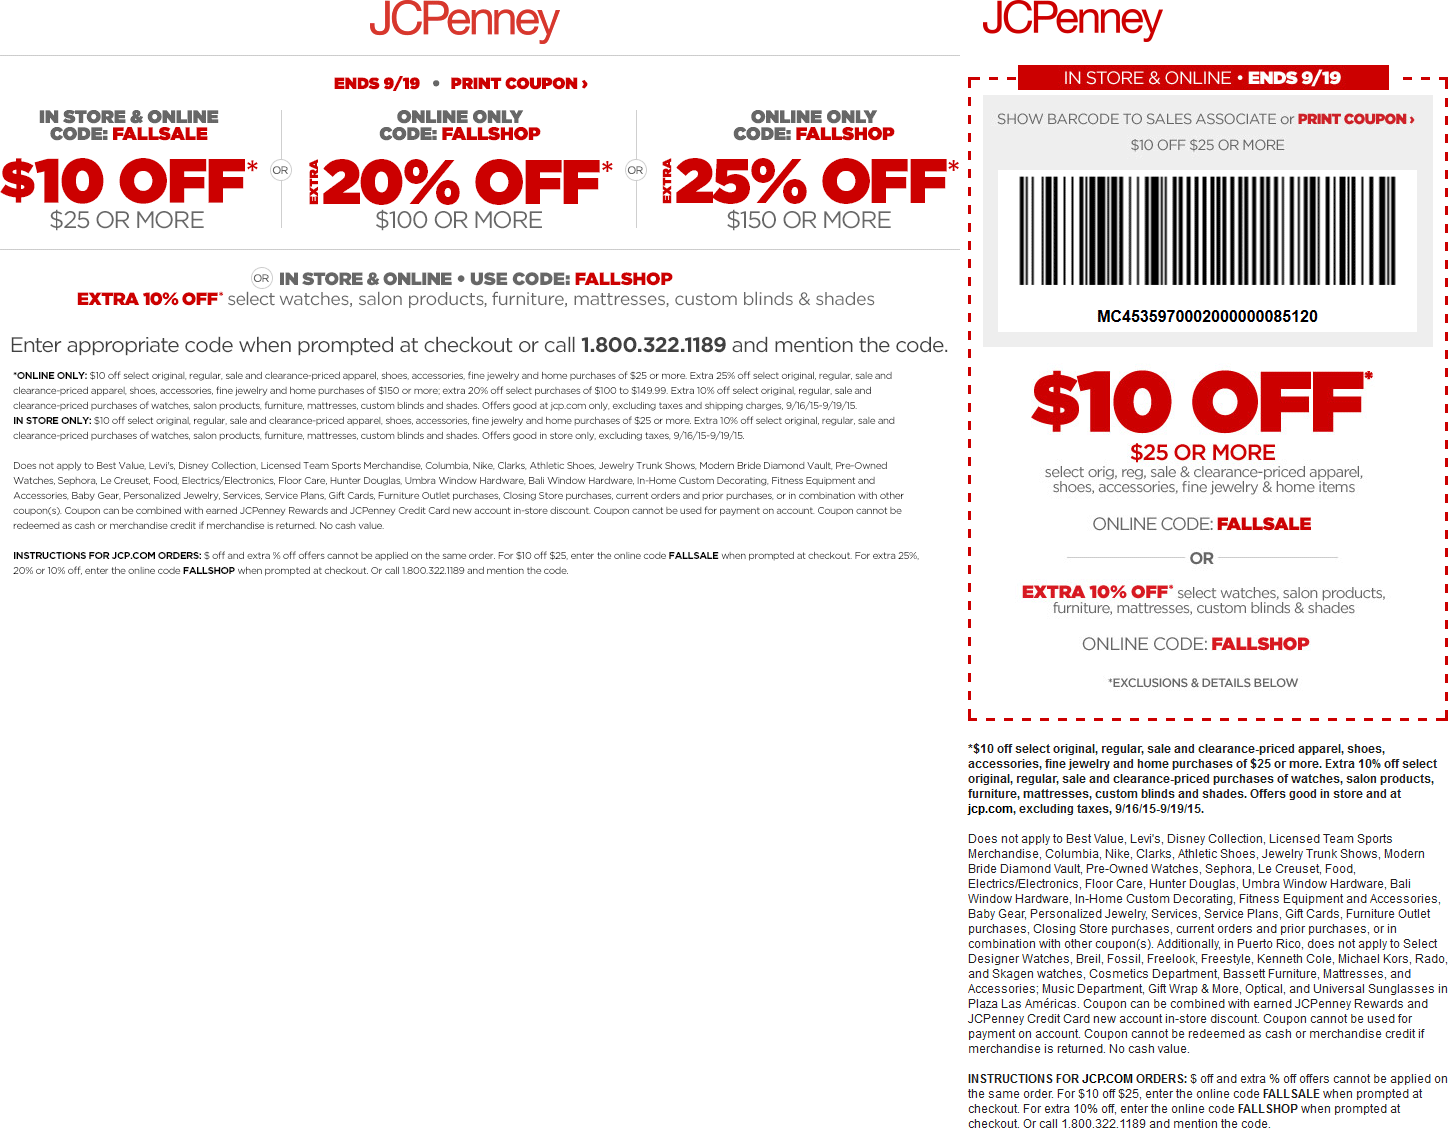 JCPenney Coupon December 2016 $10 off $25 & more at JCPenney, or online via promo code FALLSALE